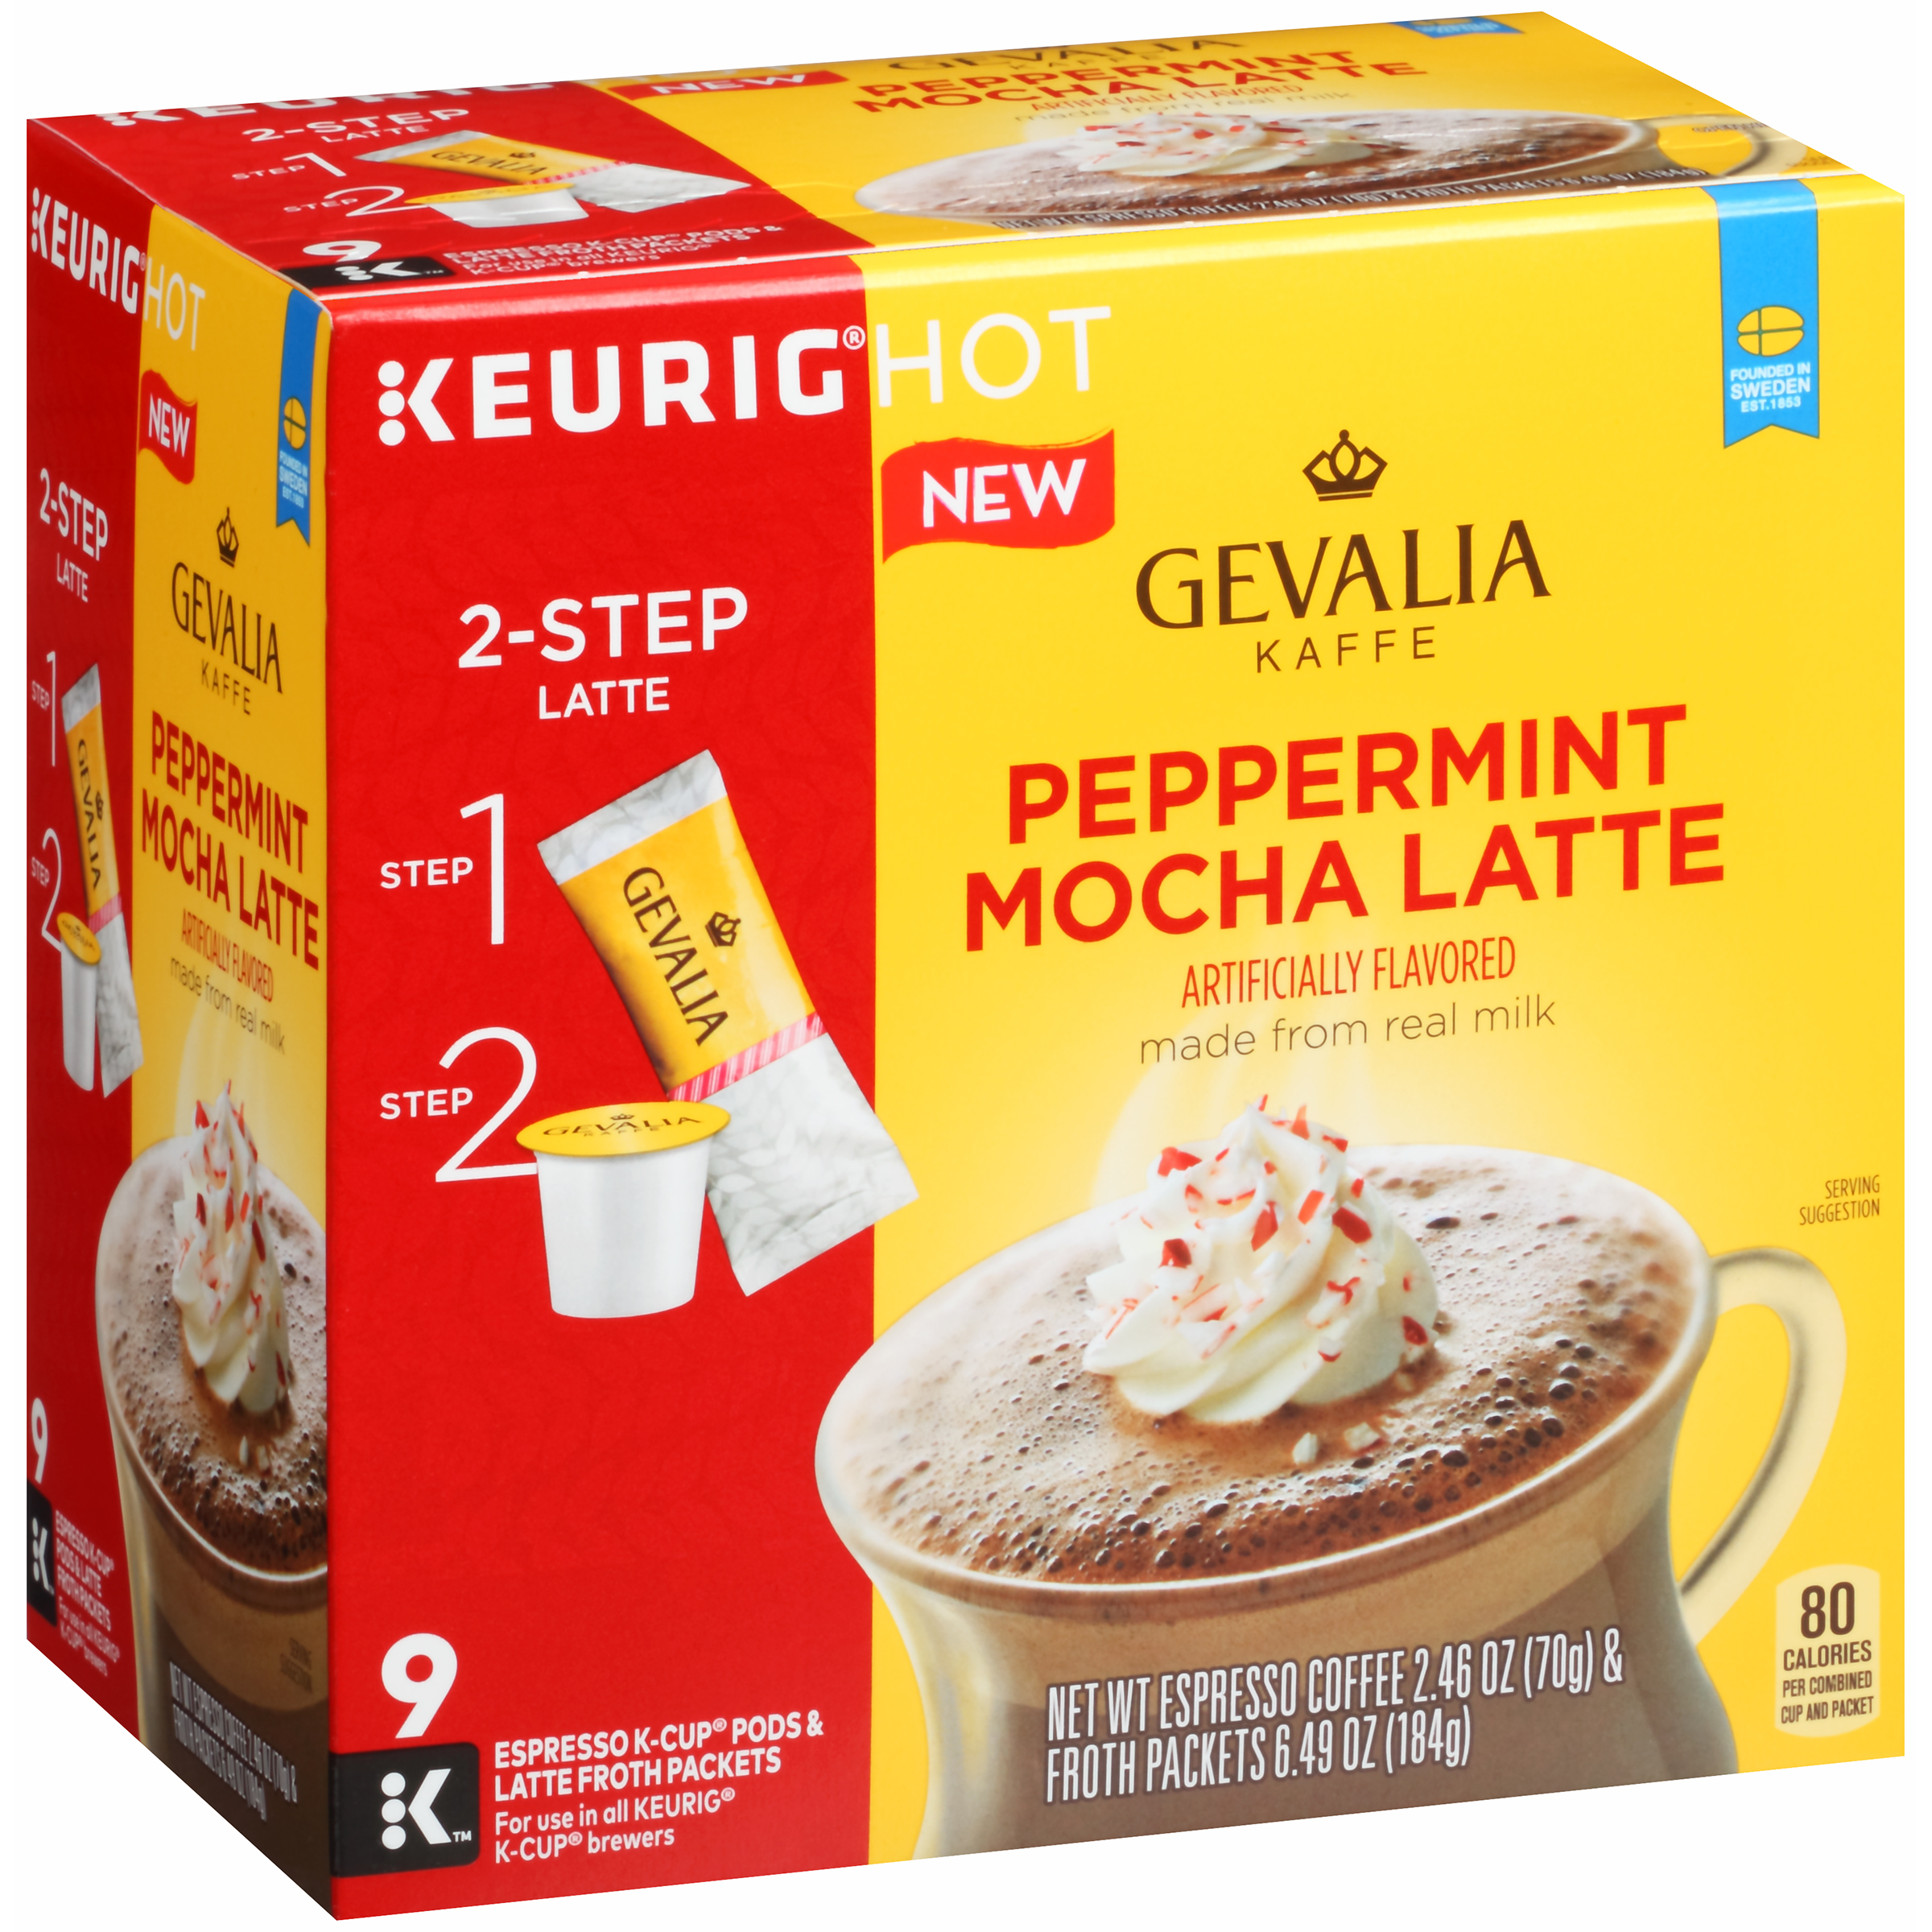 Gevalia Peppermint Mocha Latte Espresso K-Cup�� Pods & Latte Froth Packets 9 ct Box